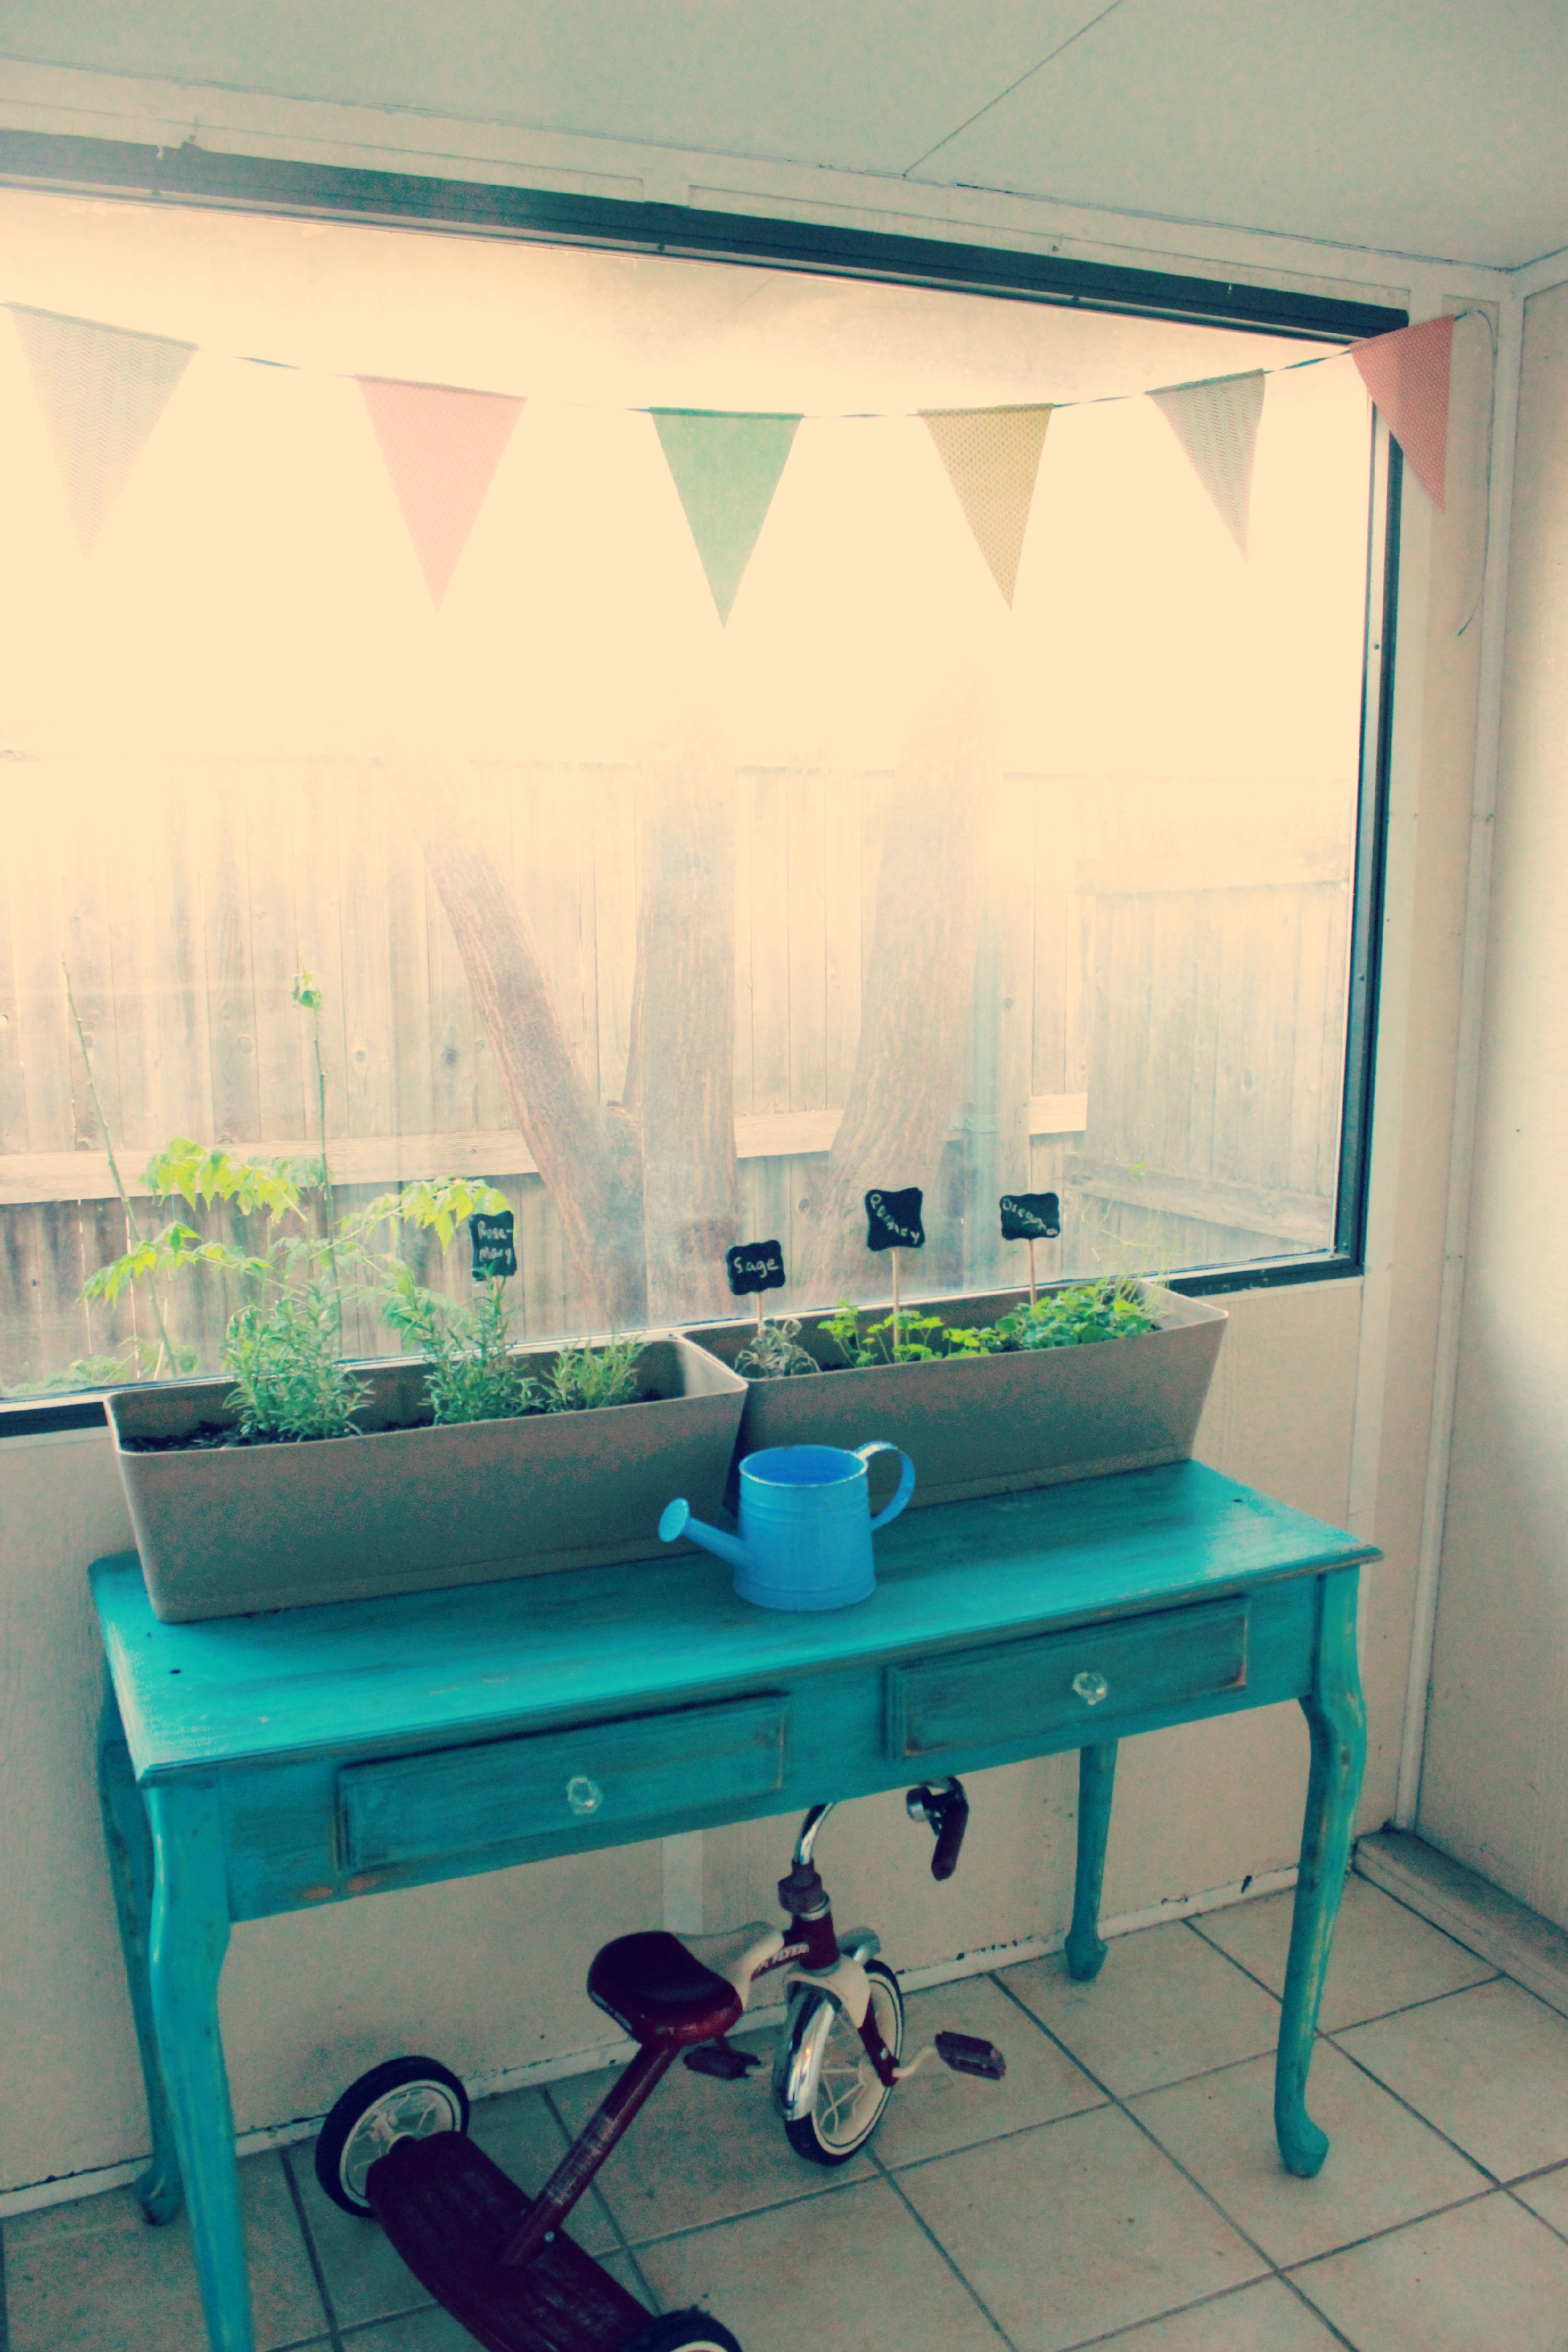 Plants in the sunroom